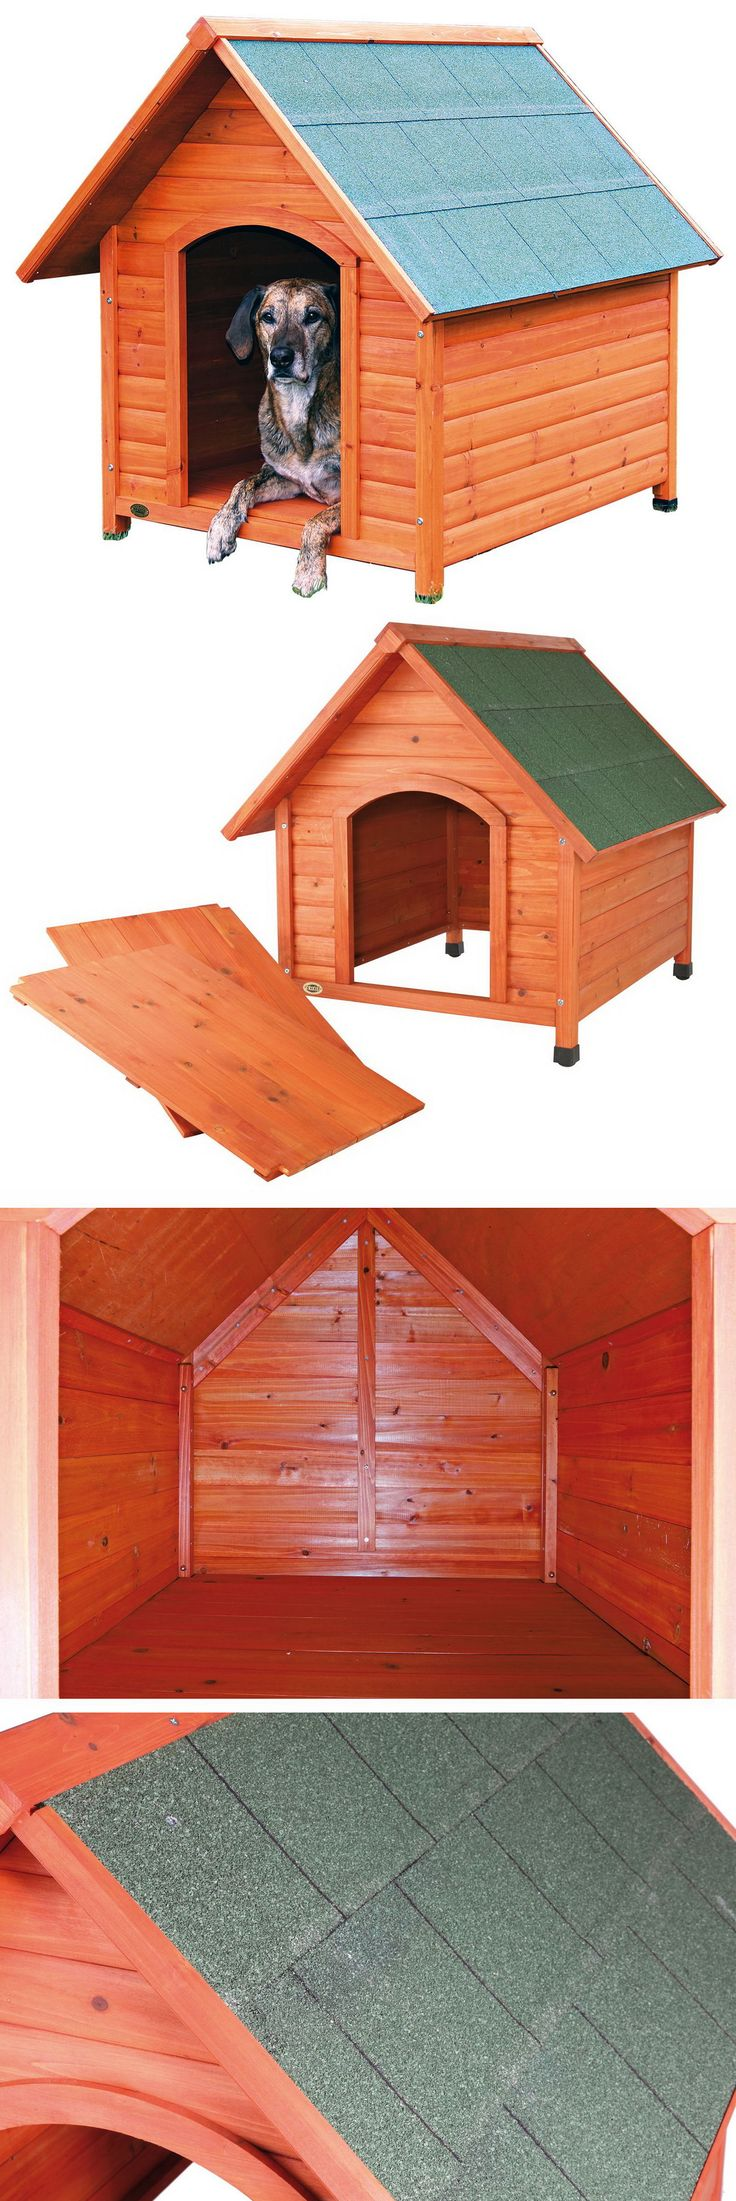 Dog Houses 108884: New Xl Wood Dog House Wooden Extra Large Breed Doghouse Raised Floor Waterproof -> BUY IT NOW ONLY: $159.89 on eBay!